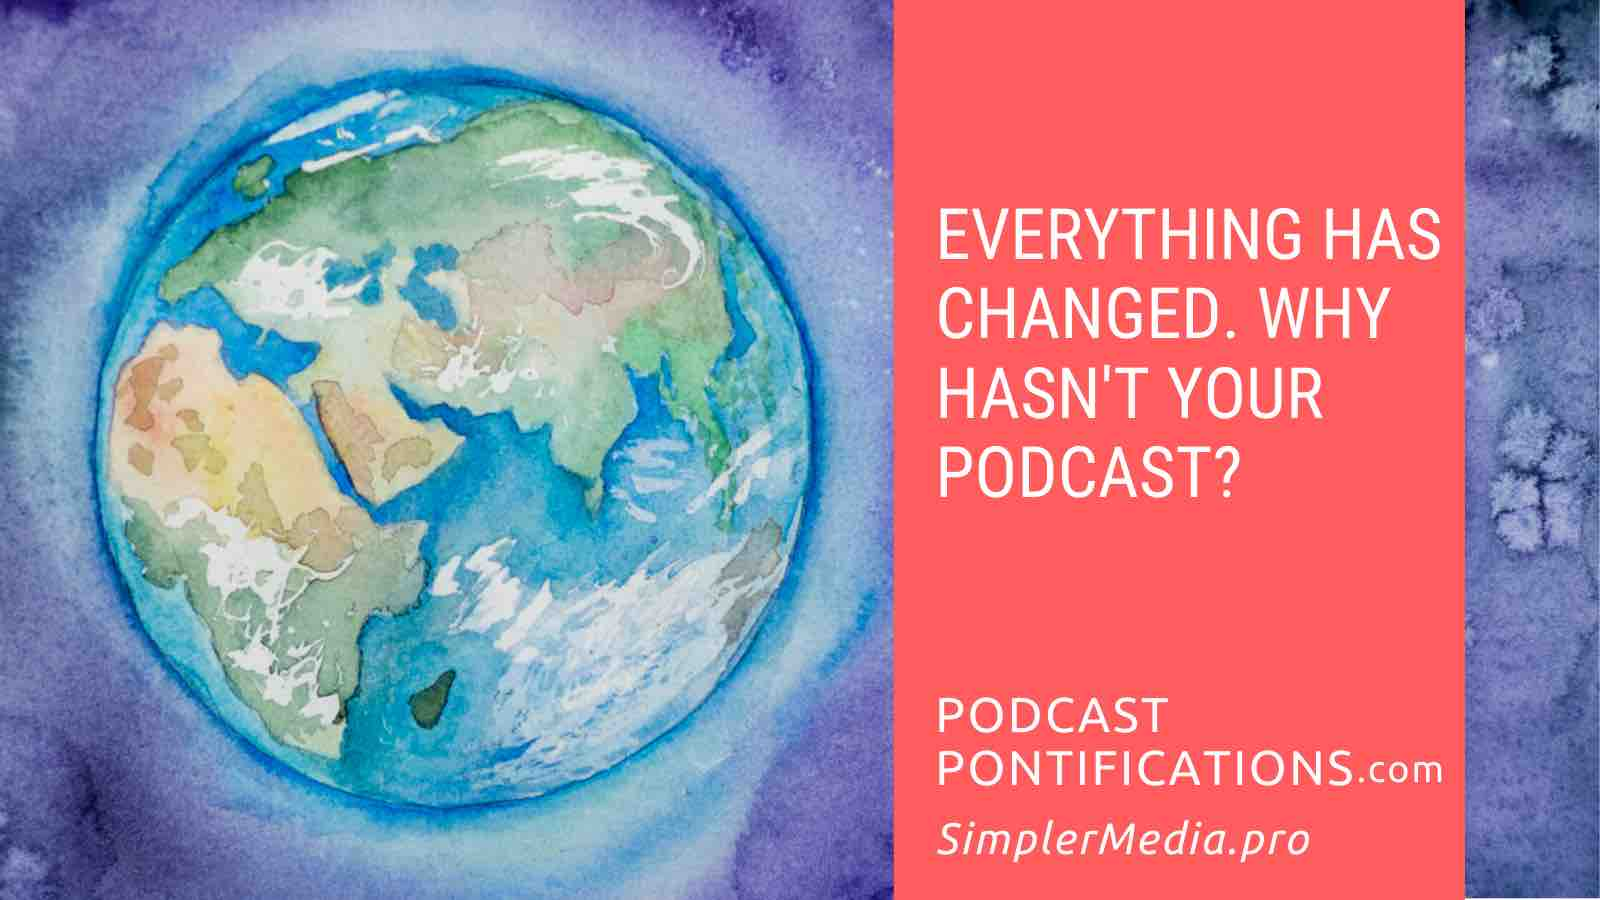 Everything Has Changed. Why Hasn't Your Podcast?